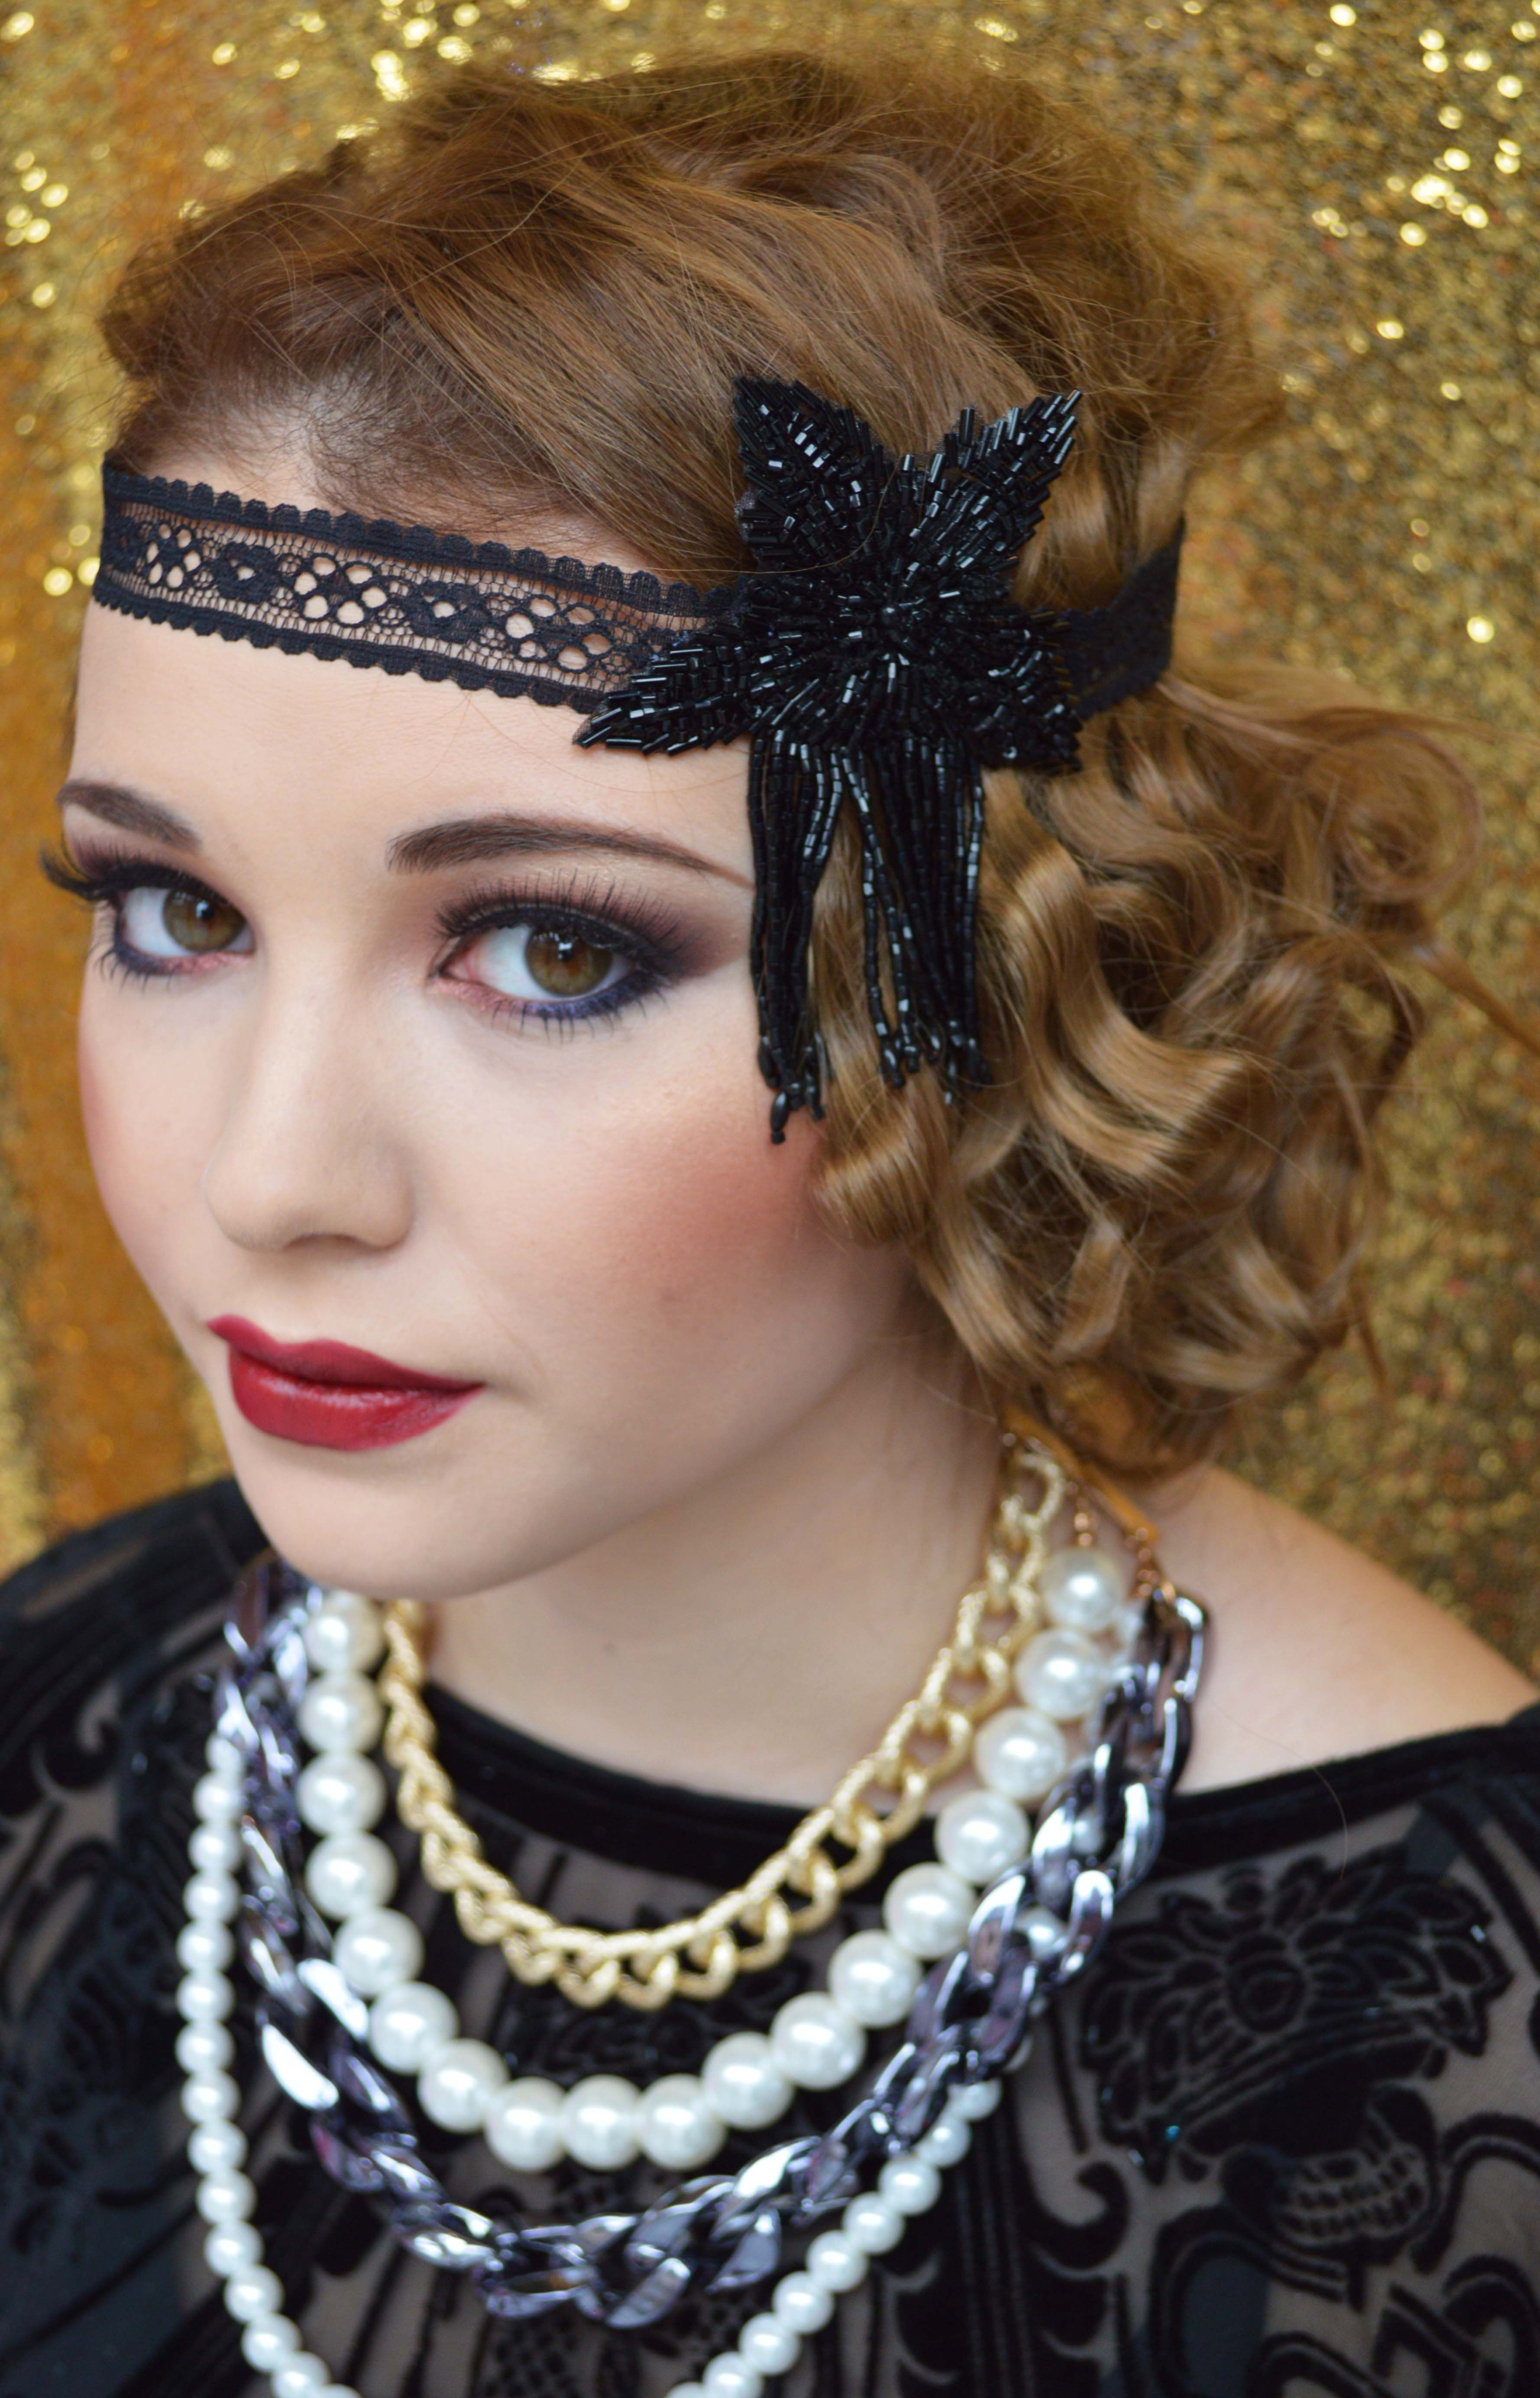 The Great Gatsby inspired makeup and hair by Peaches xx | Beauty ...